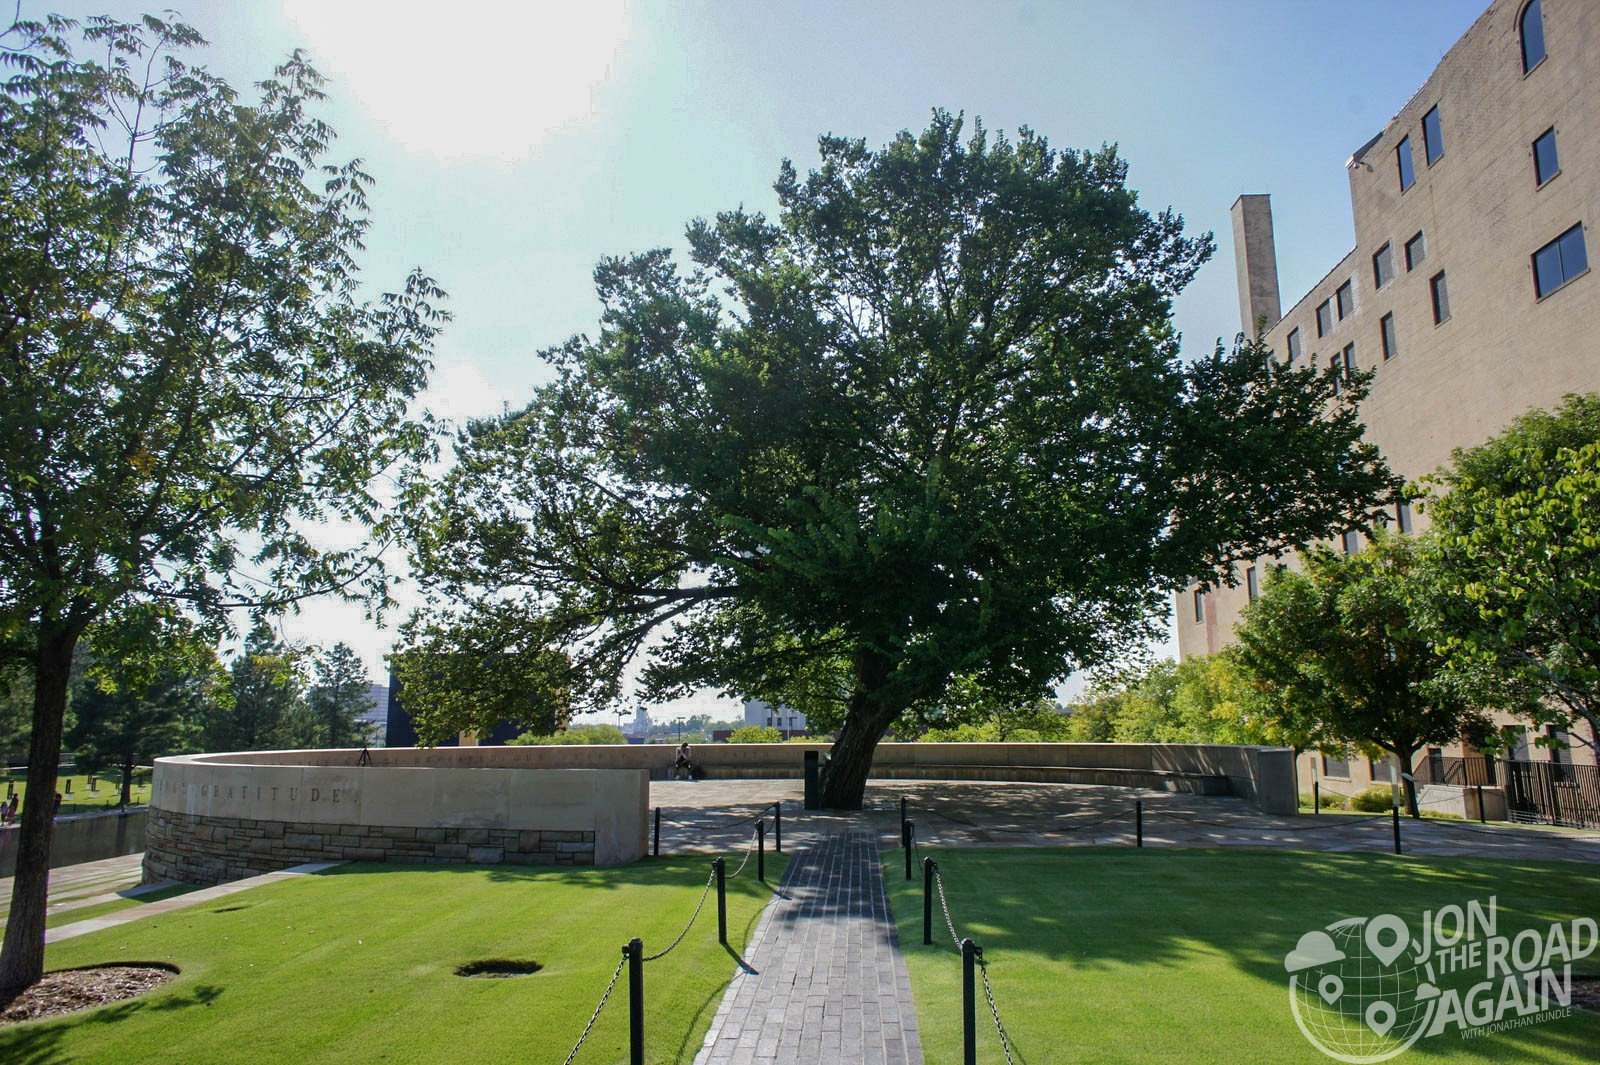 Oklahoma City Bombing Memorial Survivor's Tree